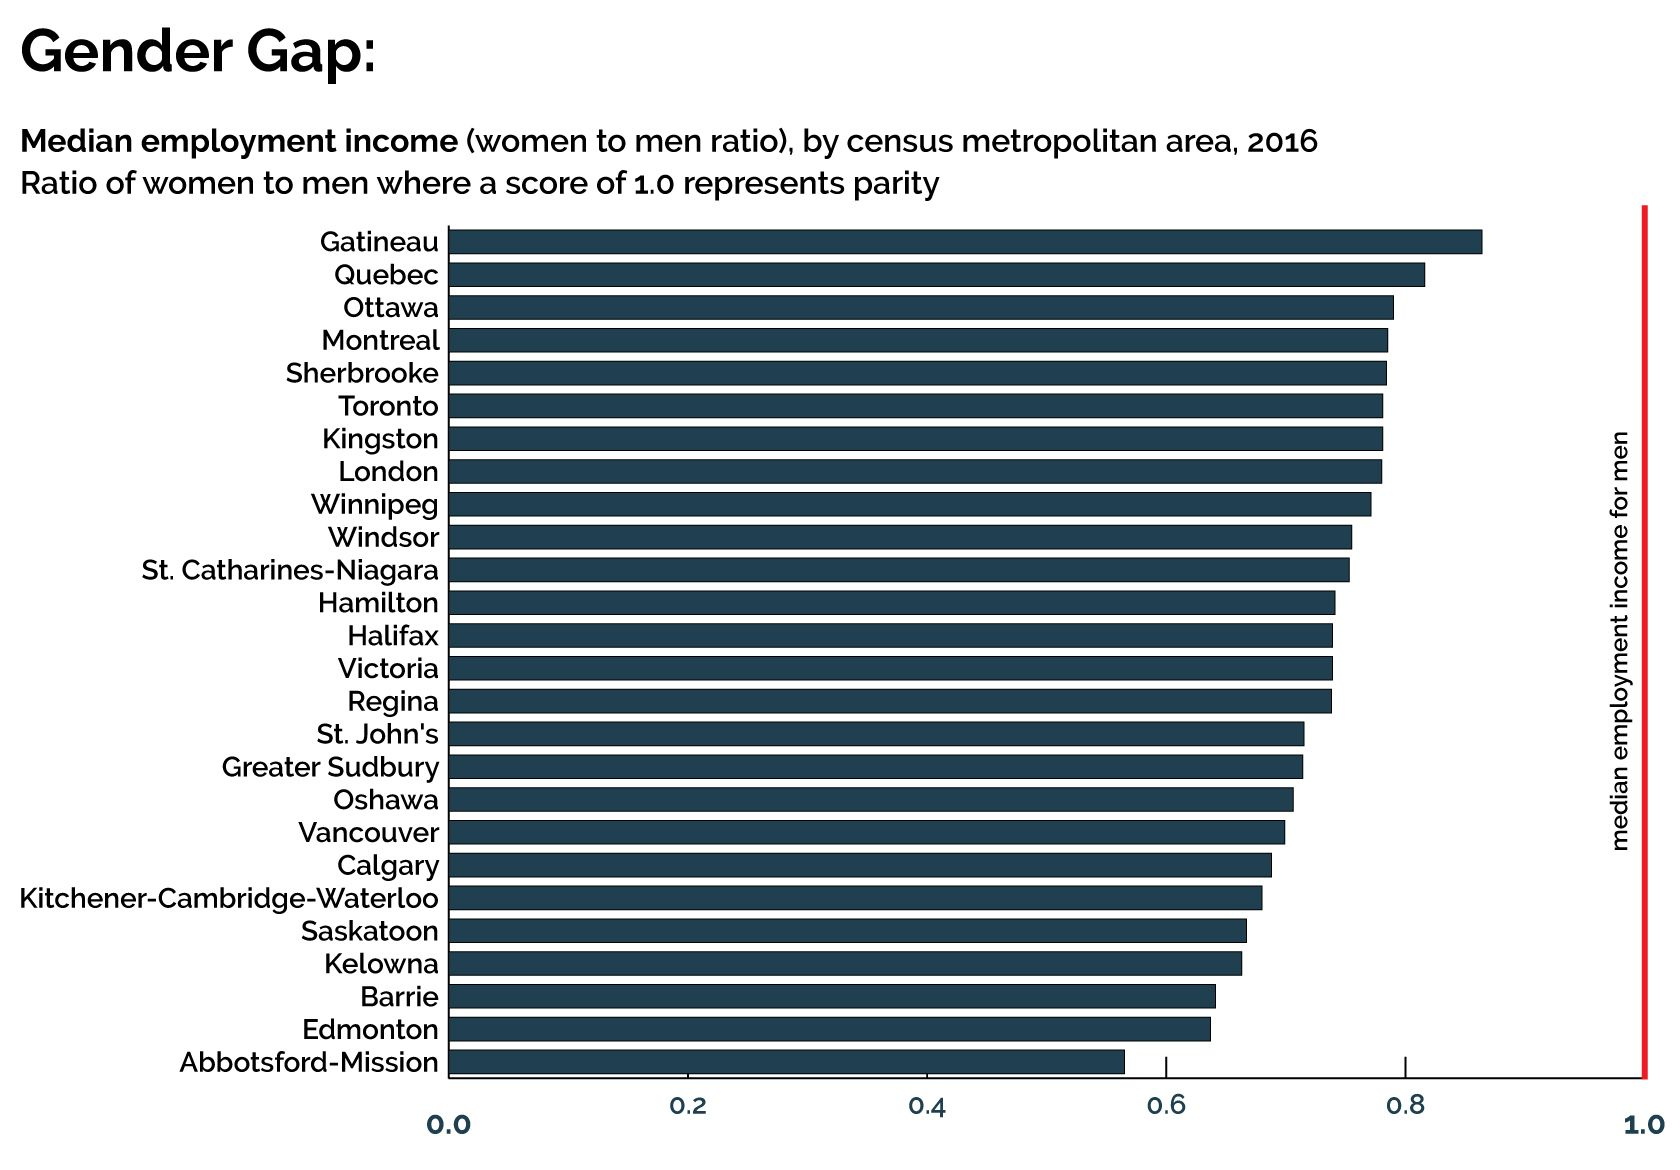 The Best and Worst Places to be a Woman in Canada - Behind the Numbers